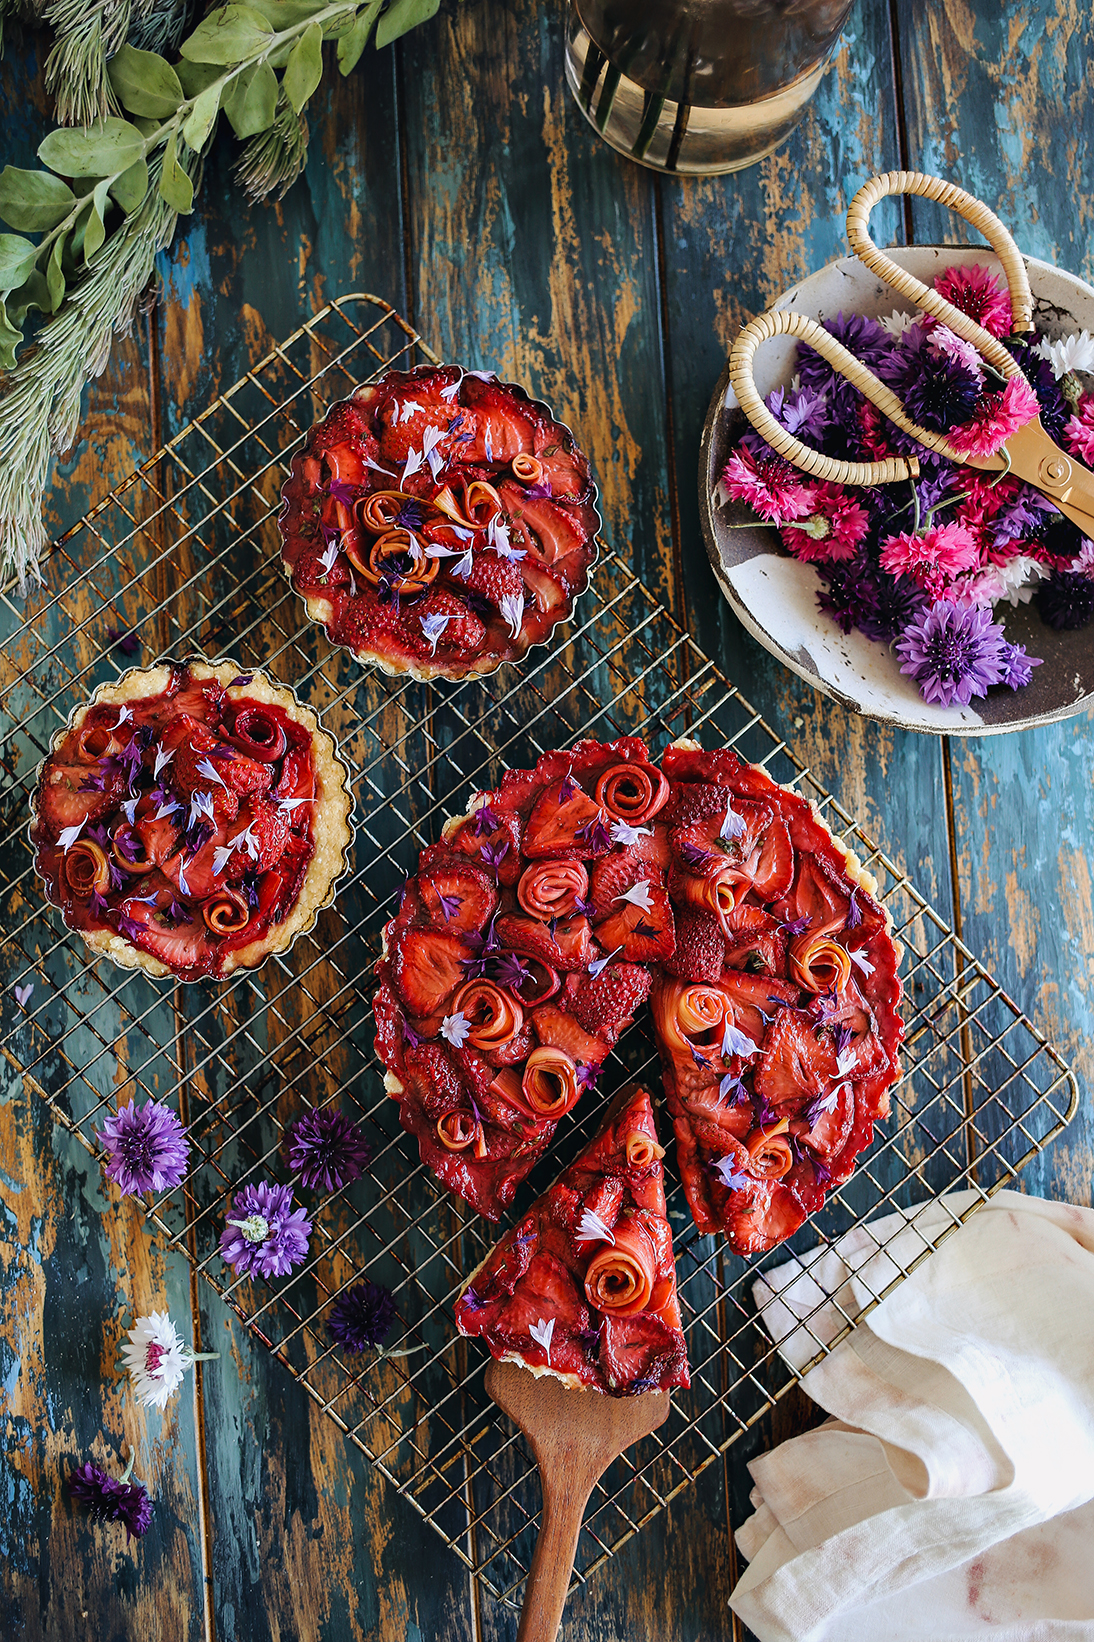 01_Strawberry & Rhubarb Balsamic Tart | Dine X Design.jpg